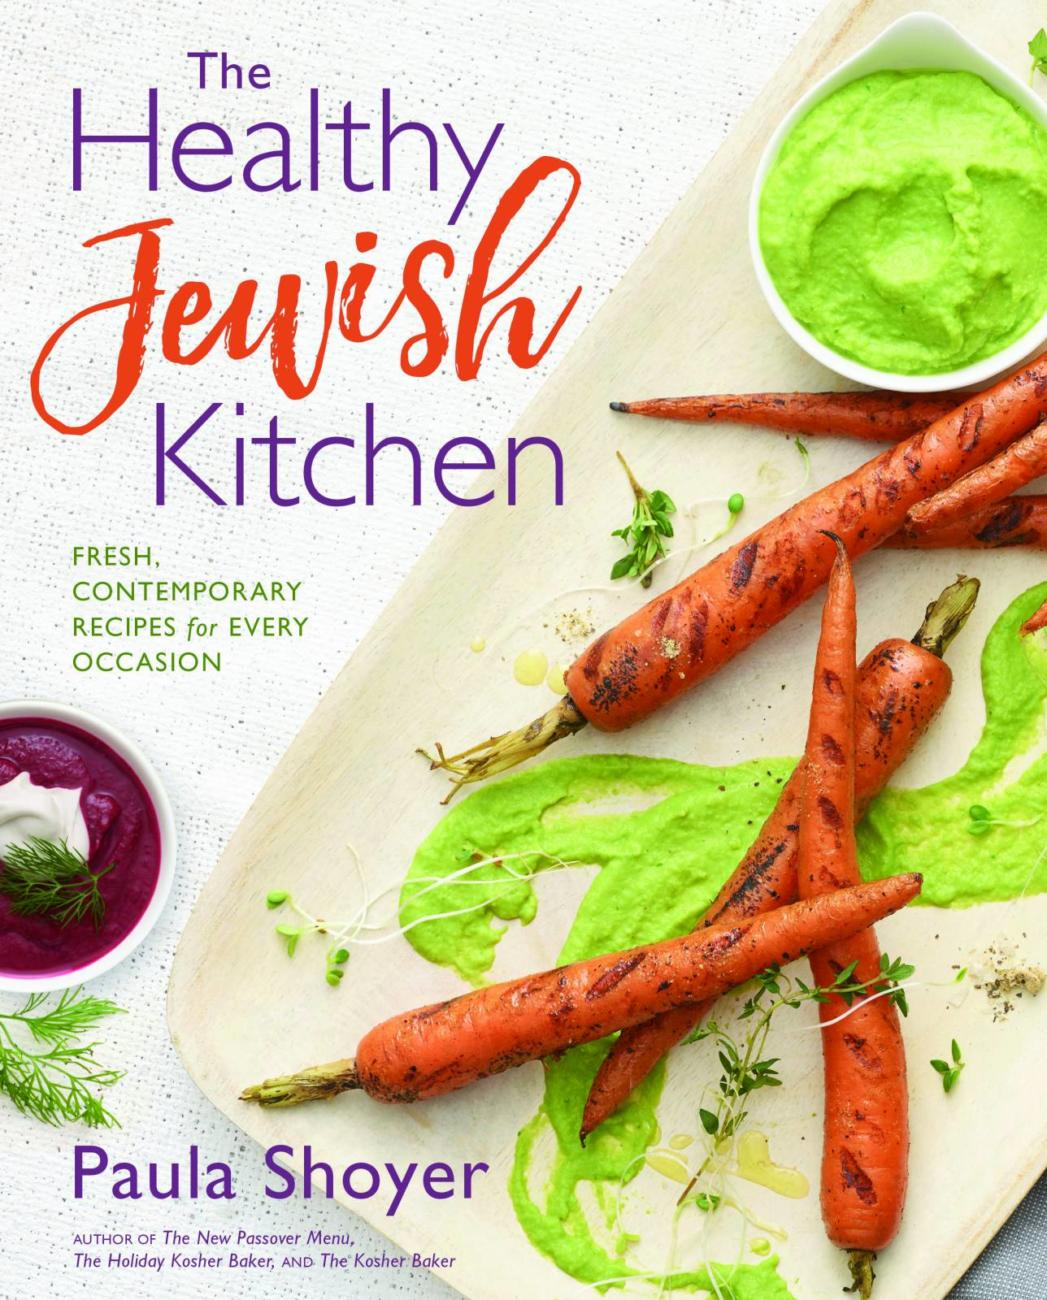 Win a Copy of The Healthy Jewish Kitchen by Paula Shoyer!